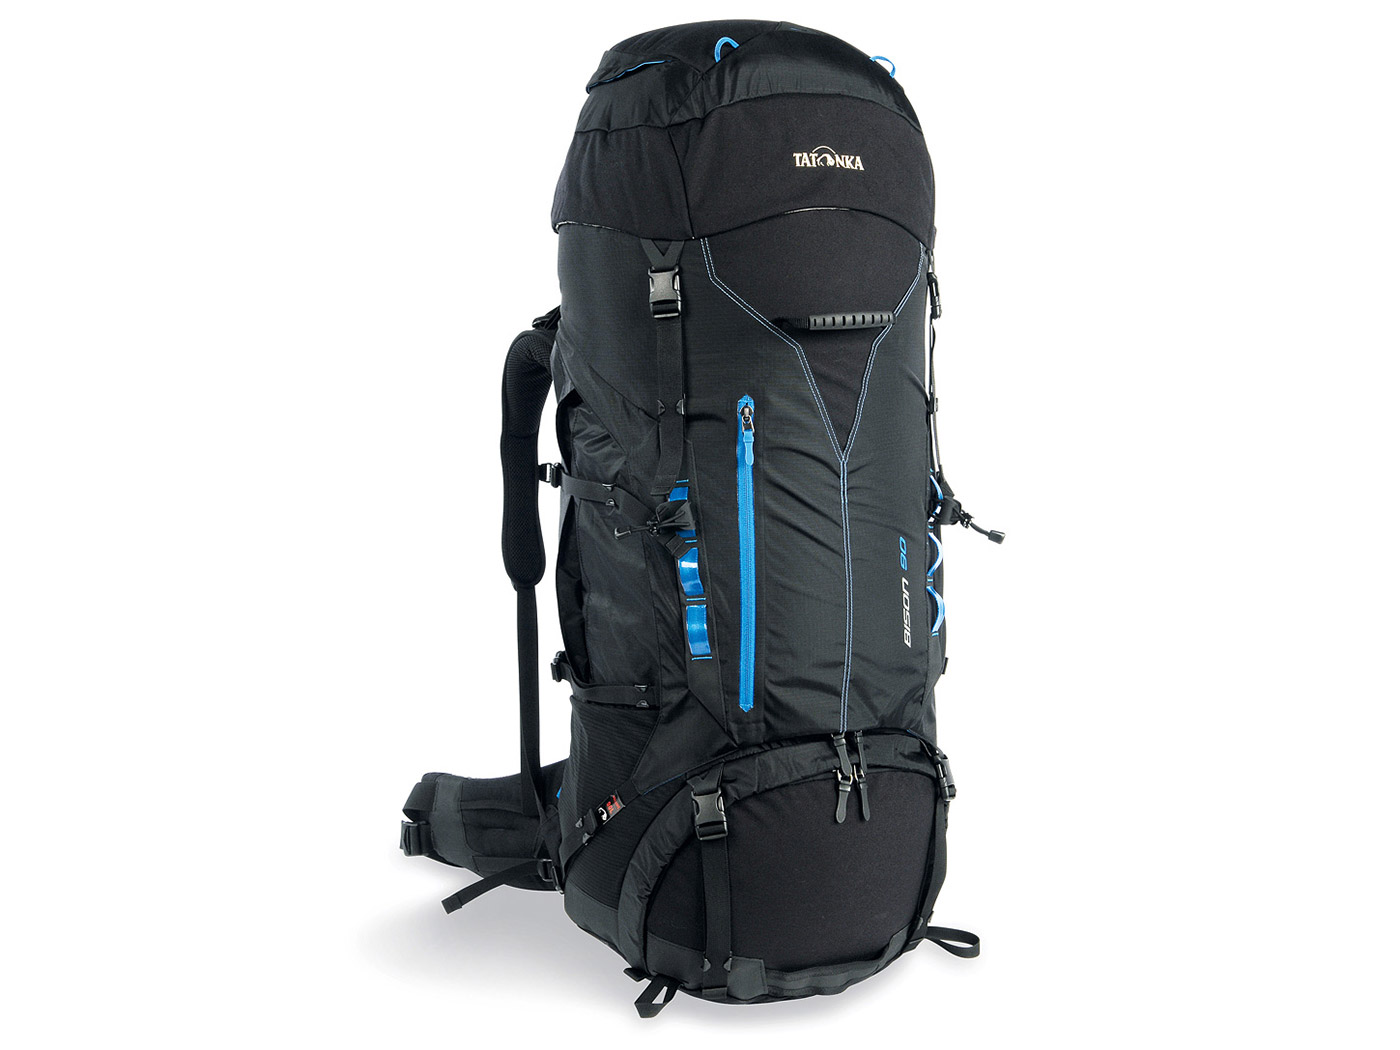 Tatonka Bison 90 black-30